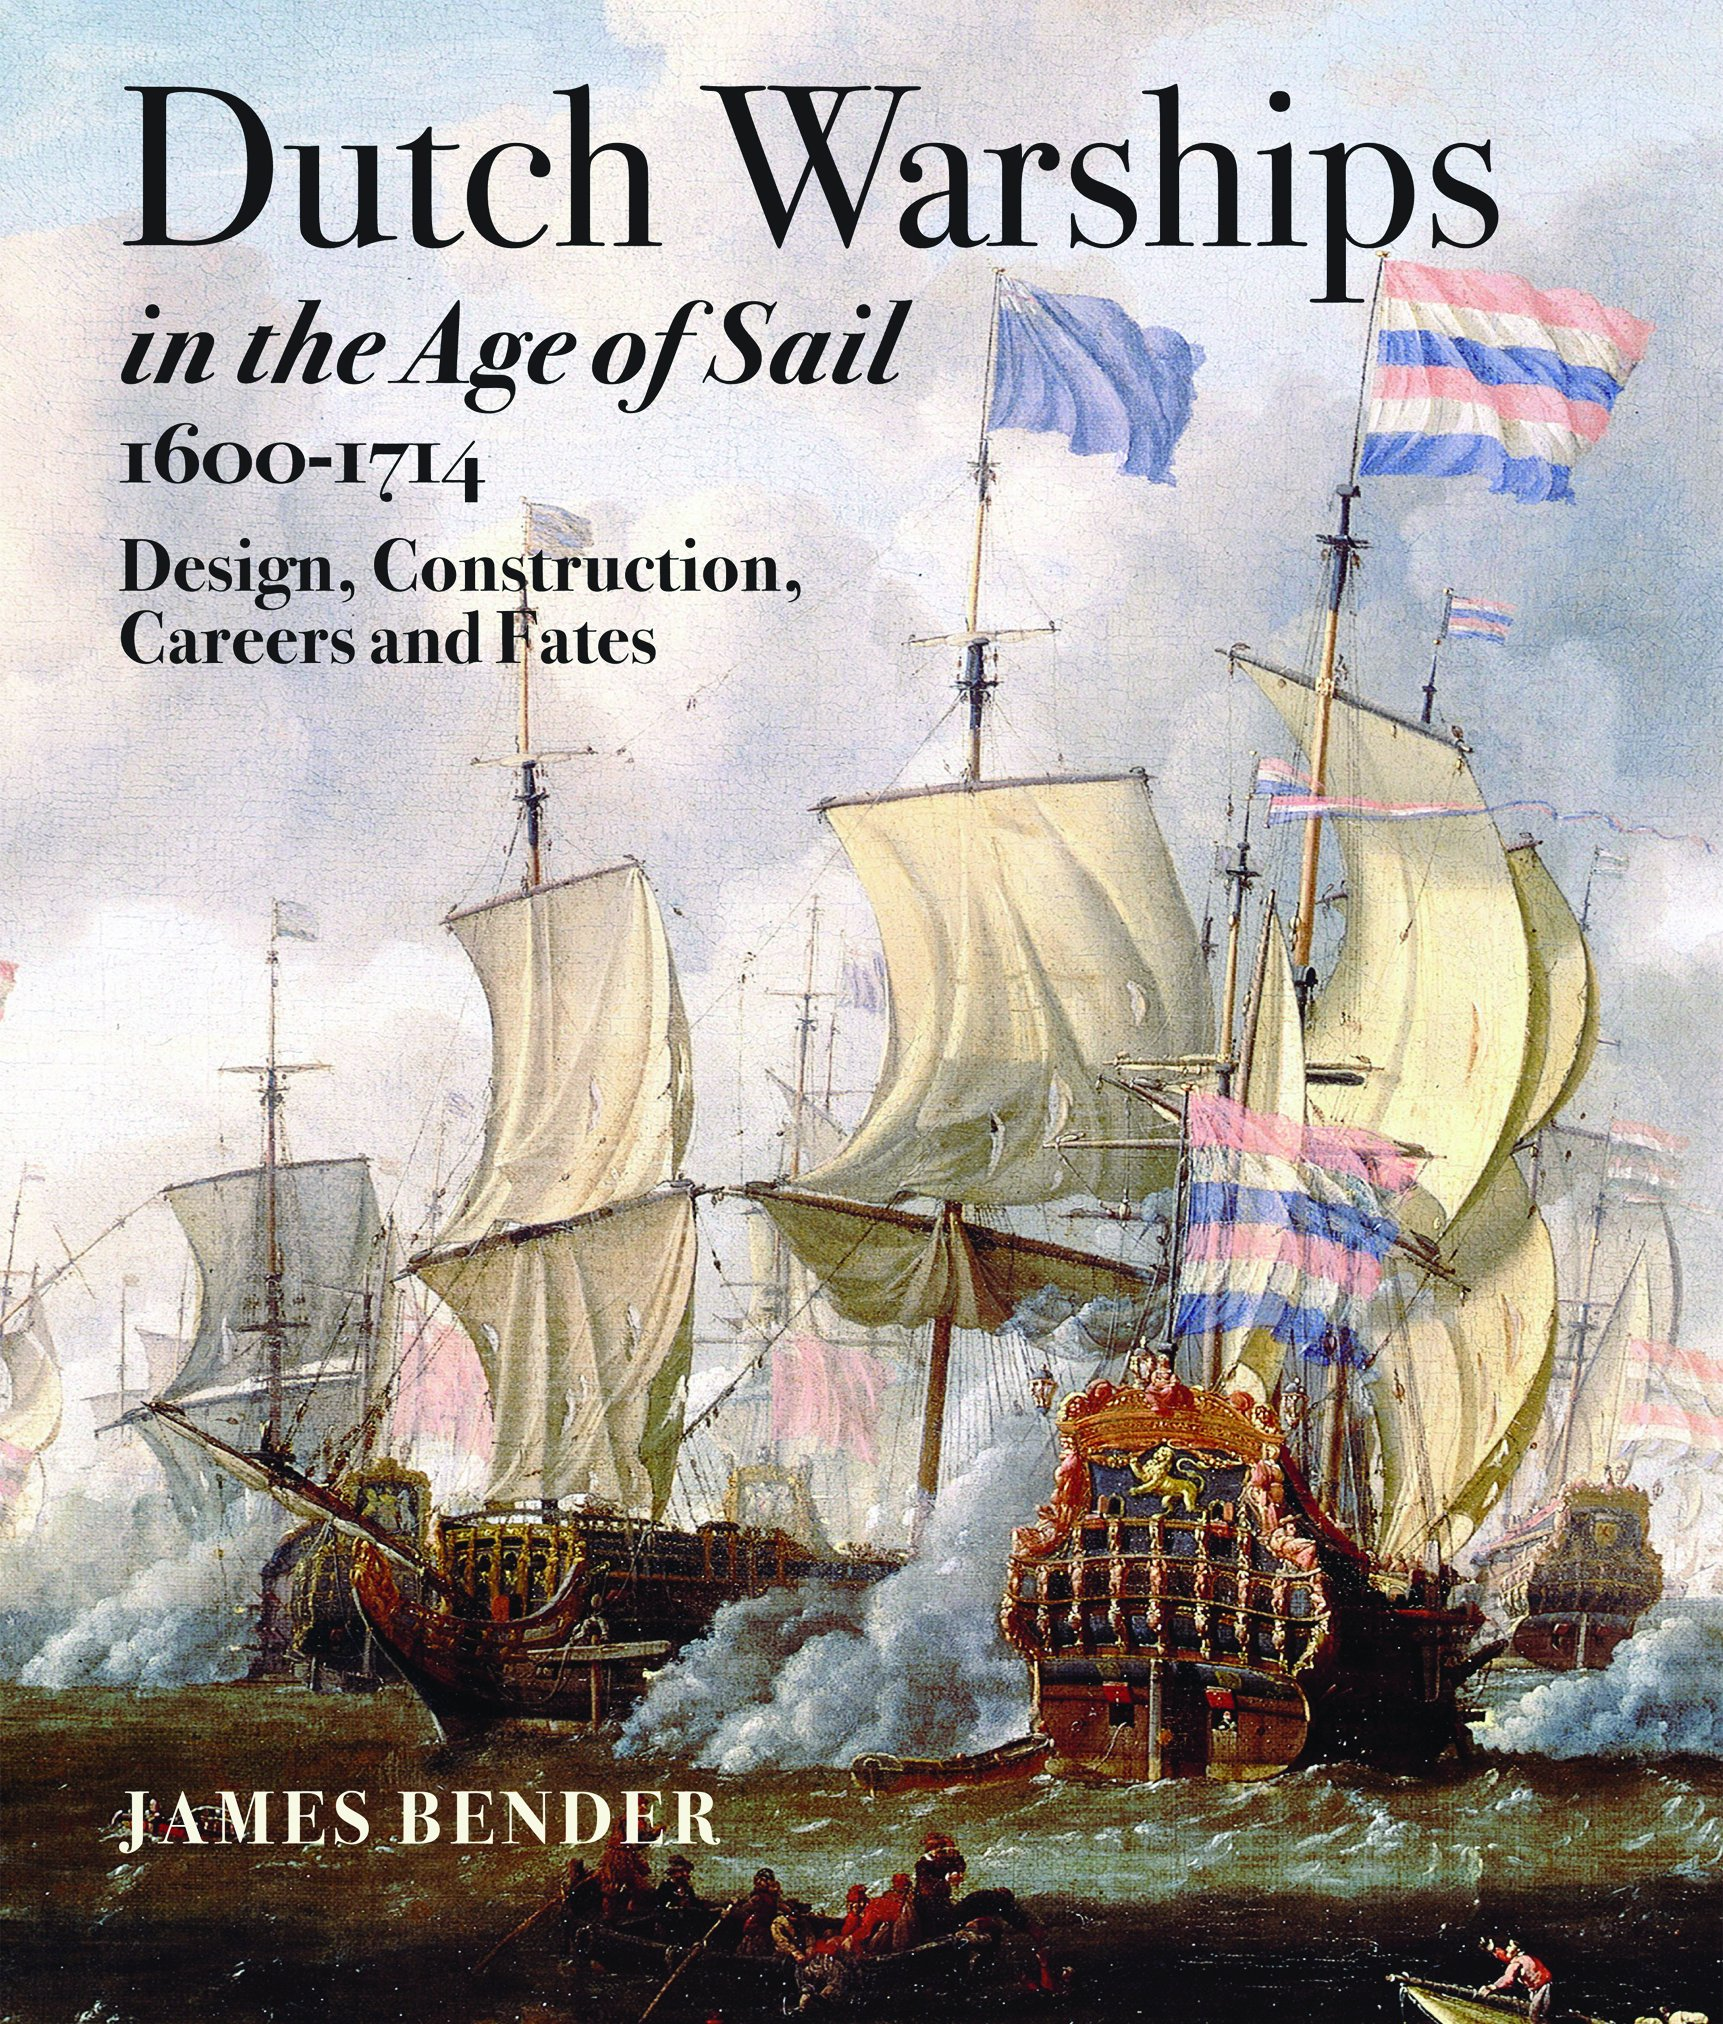 Dutch Warships in the Age of Sail, 1600-1714: Design, Construction,  Careers, and Fates: James Bender: 9781848321571: Amazon.com: Books